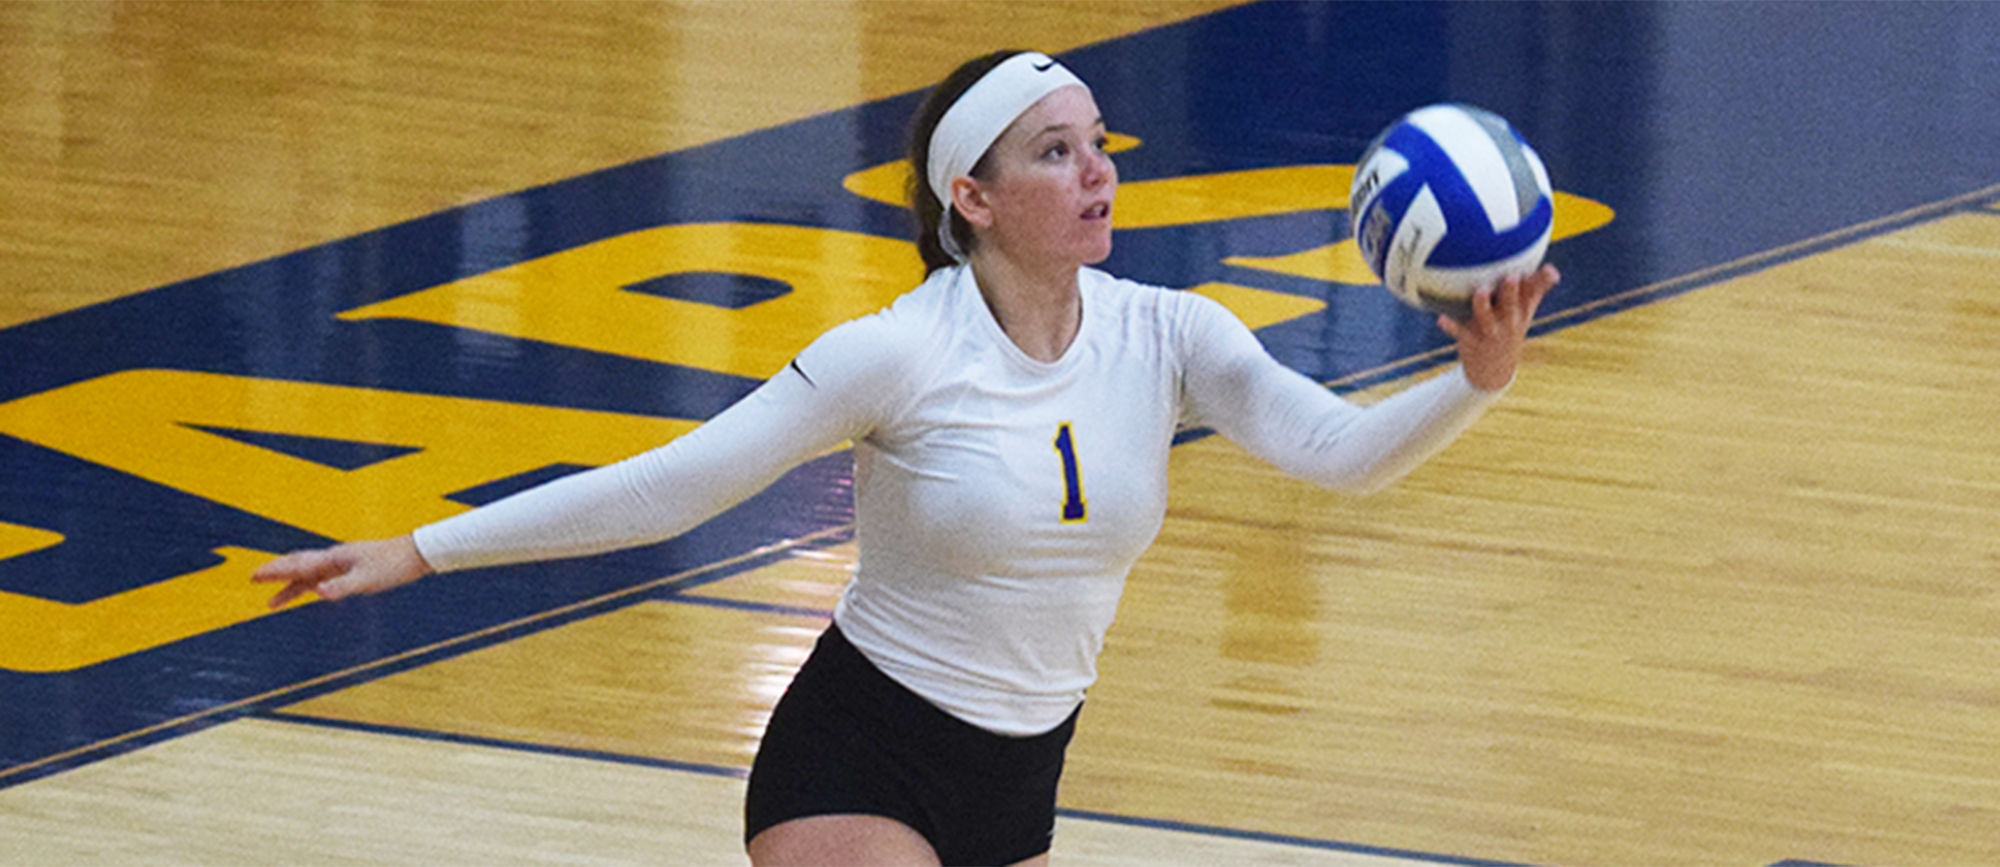 Sophomore Hailey McDonnell totaled 15 kills on Saturday as the Golden Bears split matches with Eastern Connecticut and Westfield State. (Photo by Courtney Carlson)